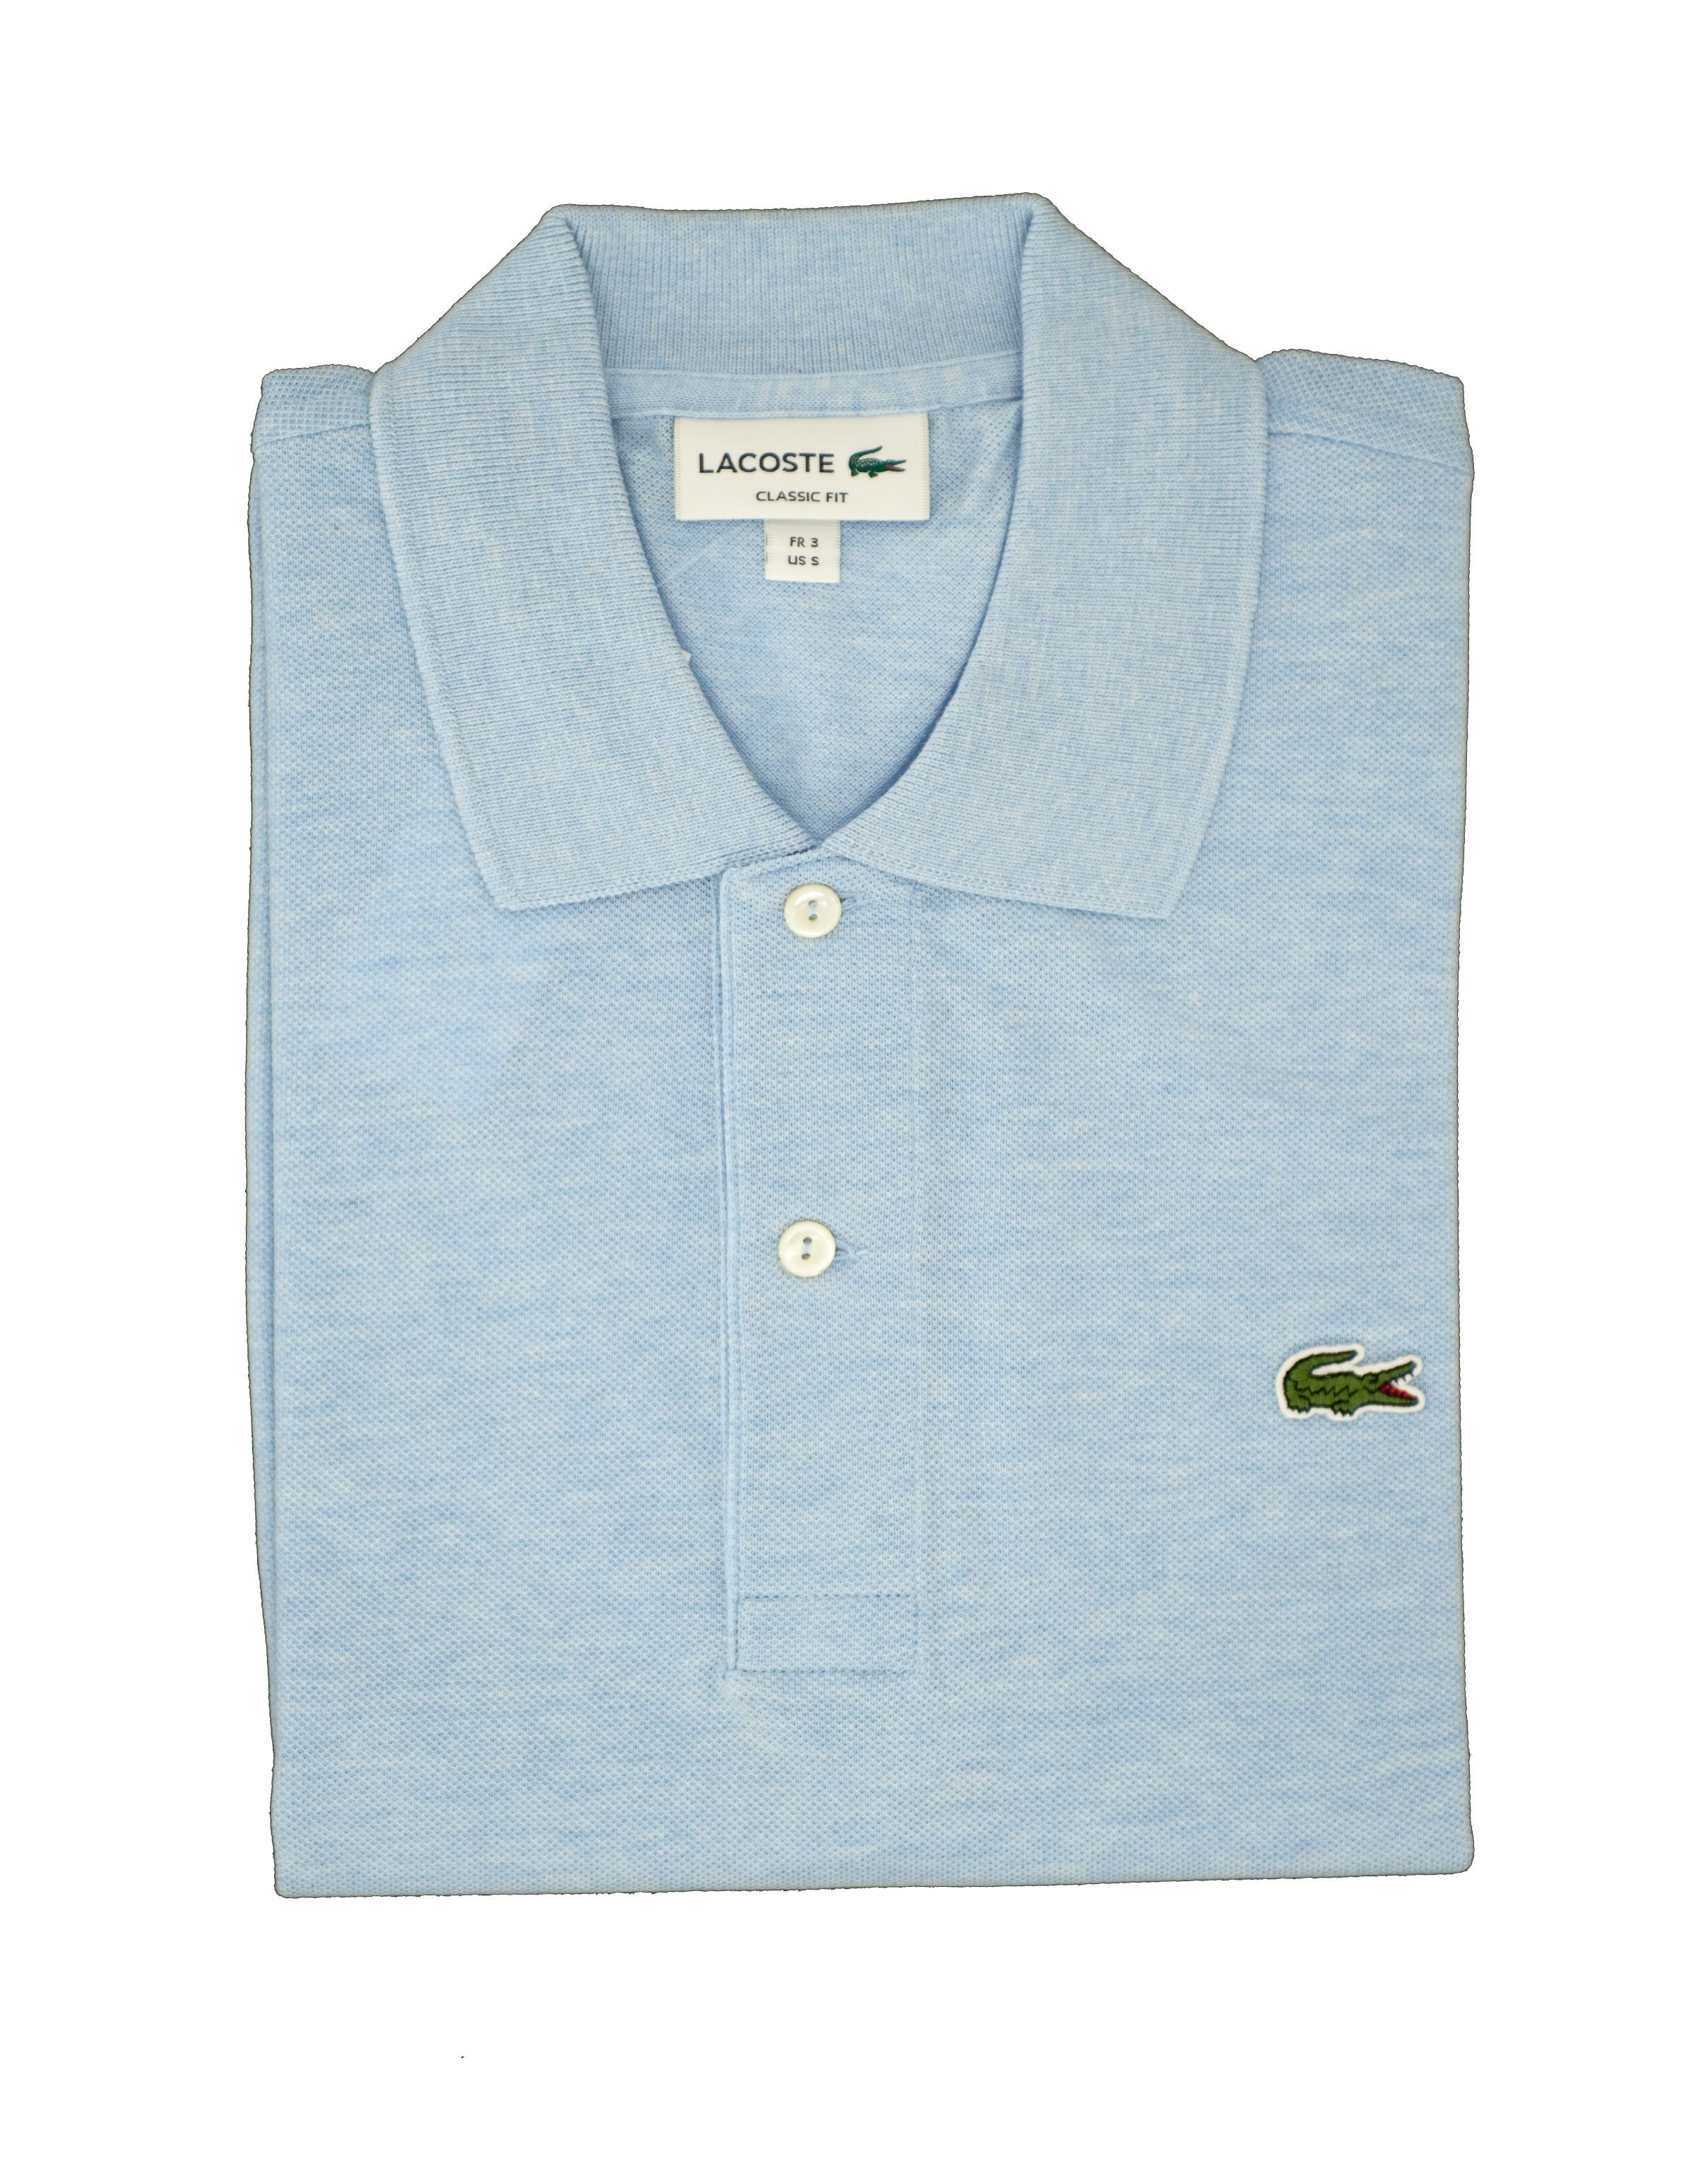 Immagine di Polo lacoste chiné bleu chiné